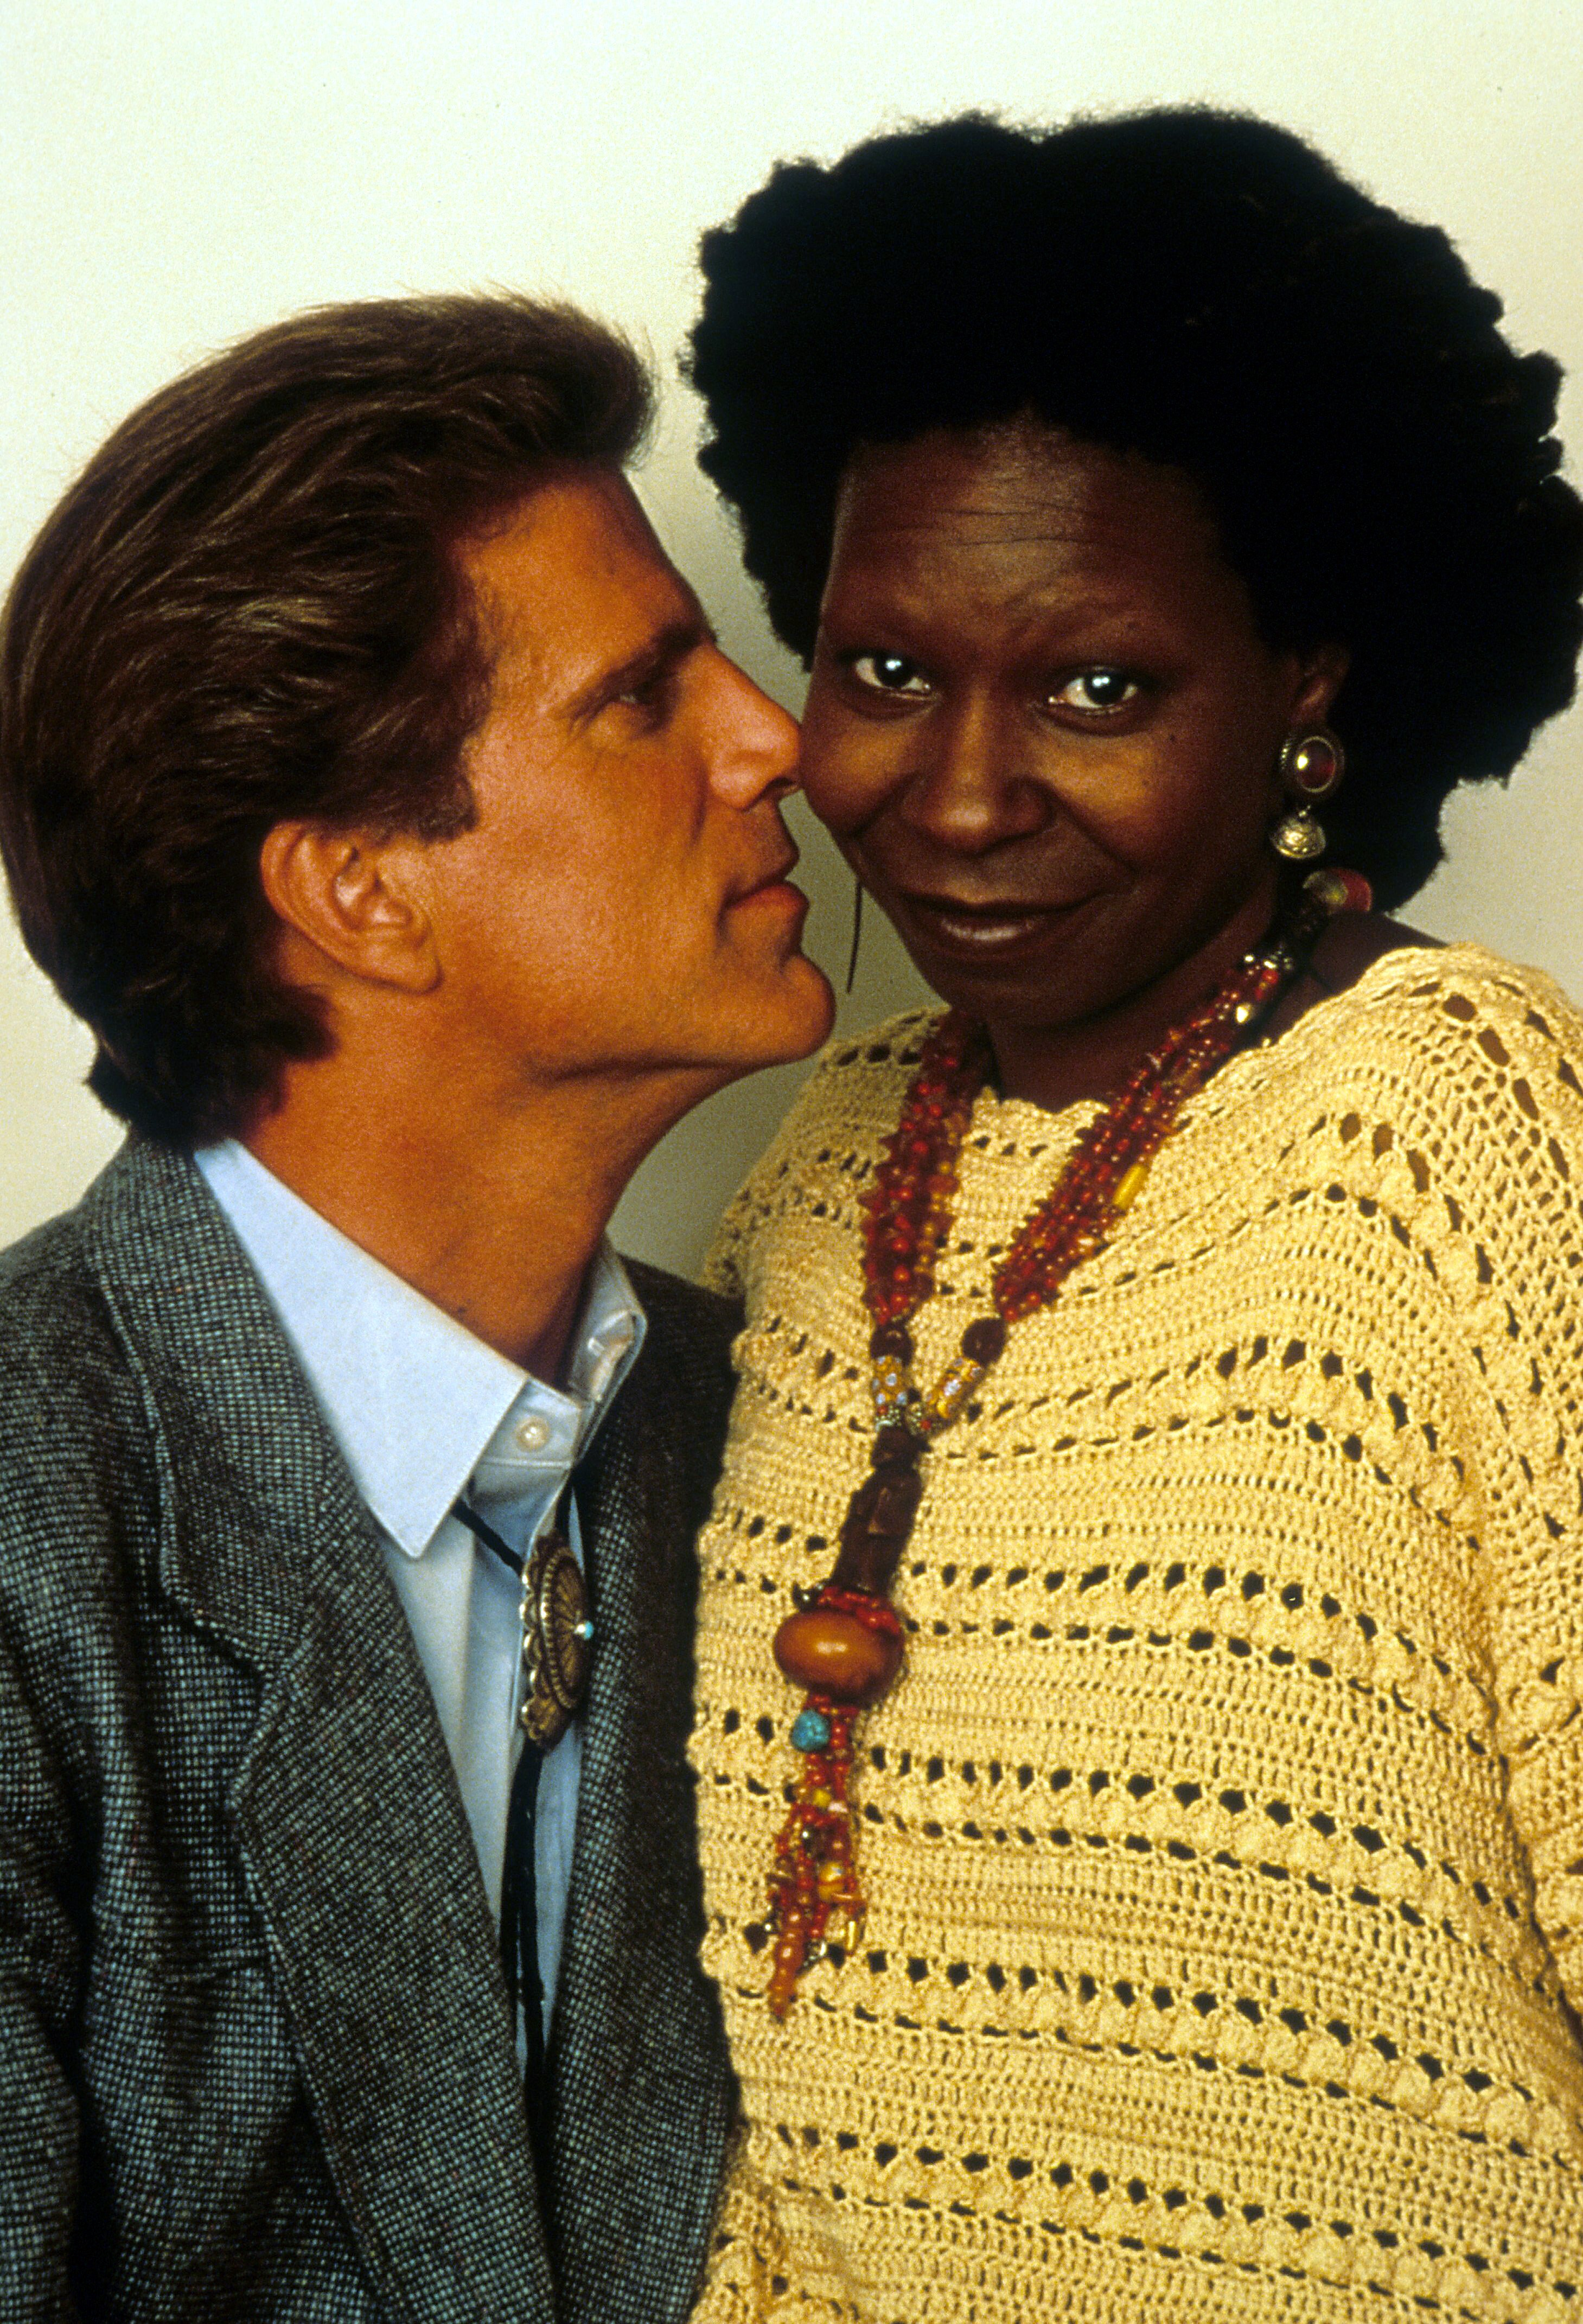 Whoopi Goldberg not amused by Ted Danson's face right up next to her in a scene from the film 'Made In America', 1993. | Source: Getty Images